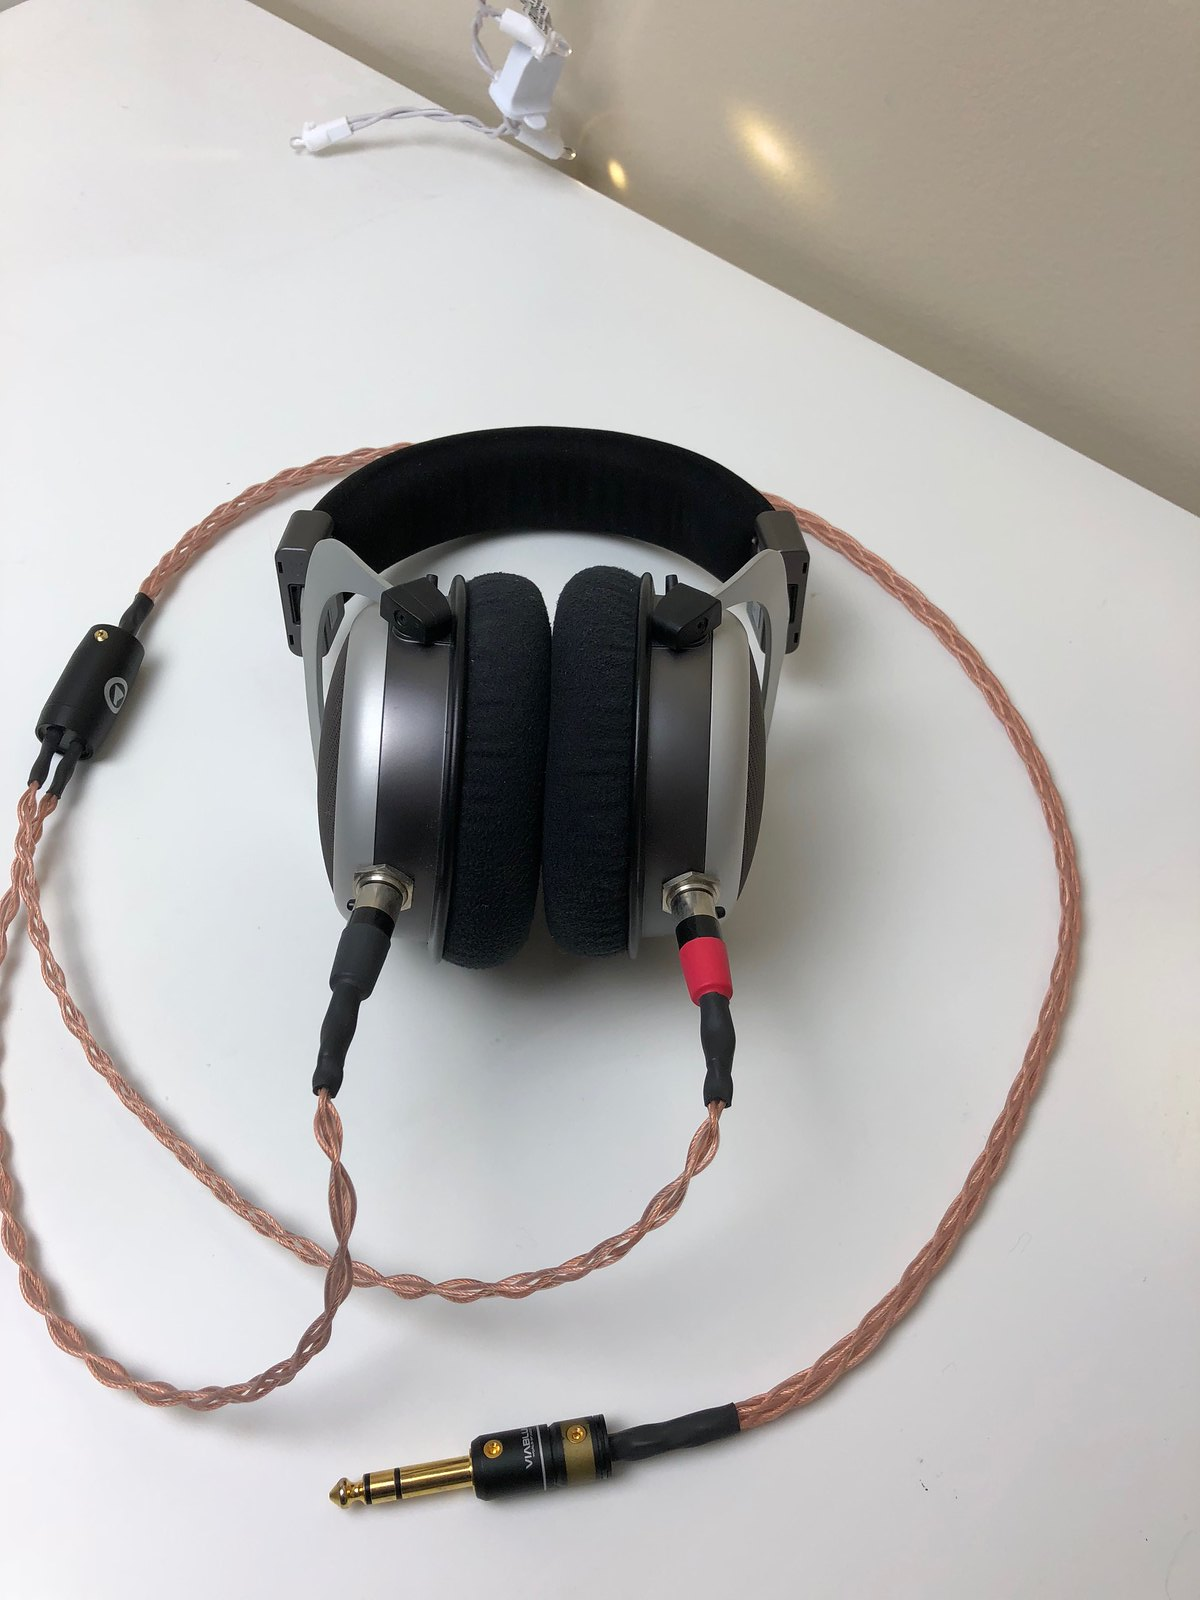 Beyerdynamic T90 & Custom Cable | Headphone Reviews and Discussion ...